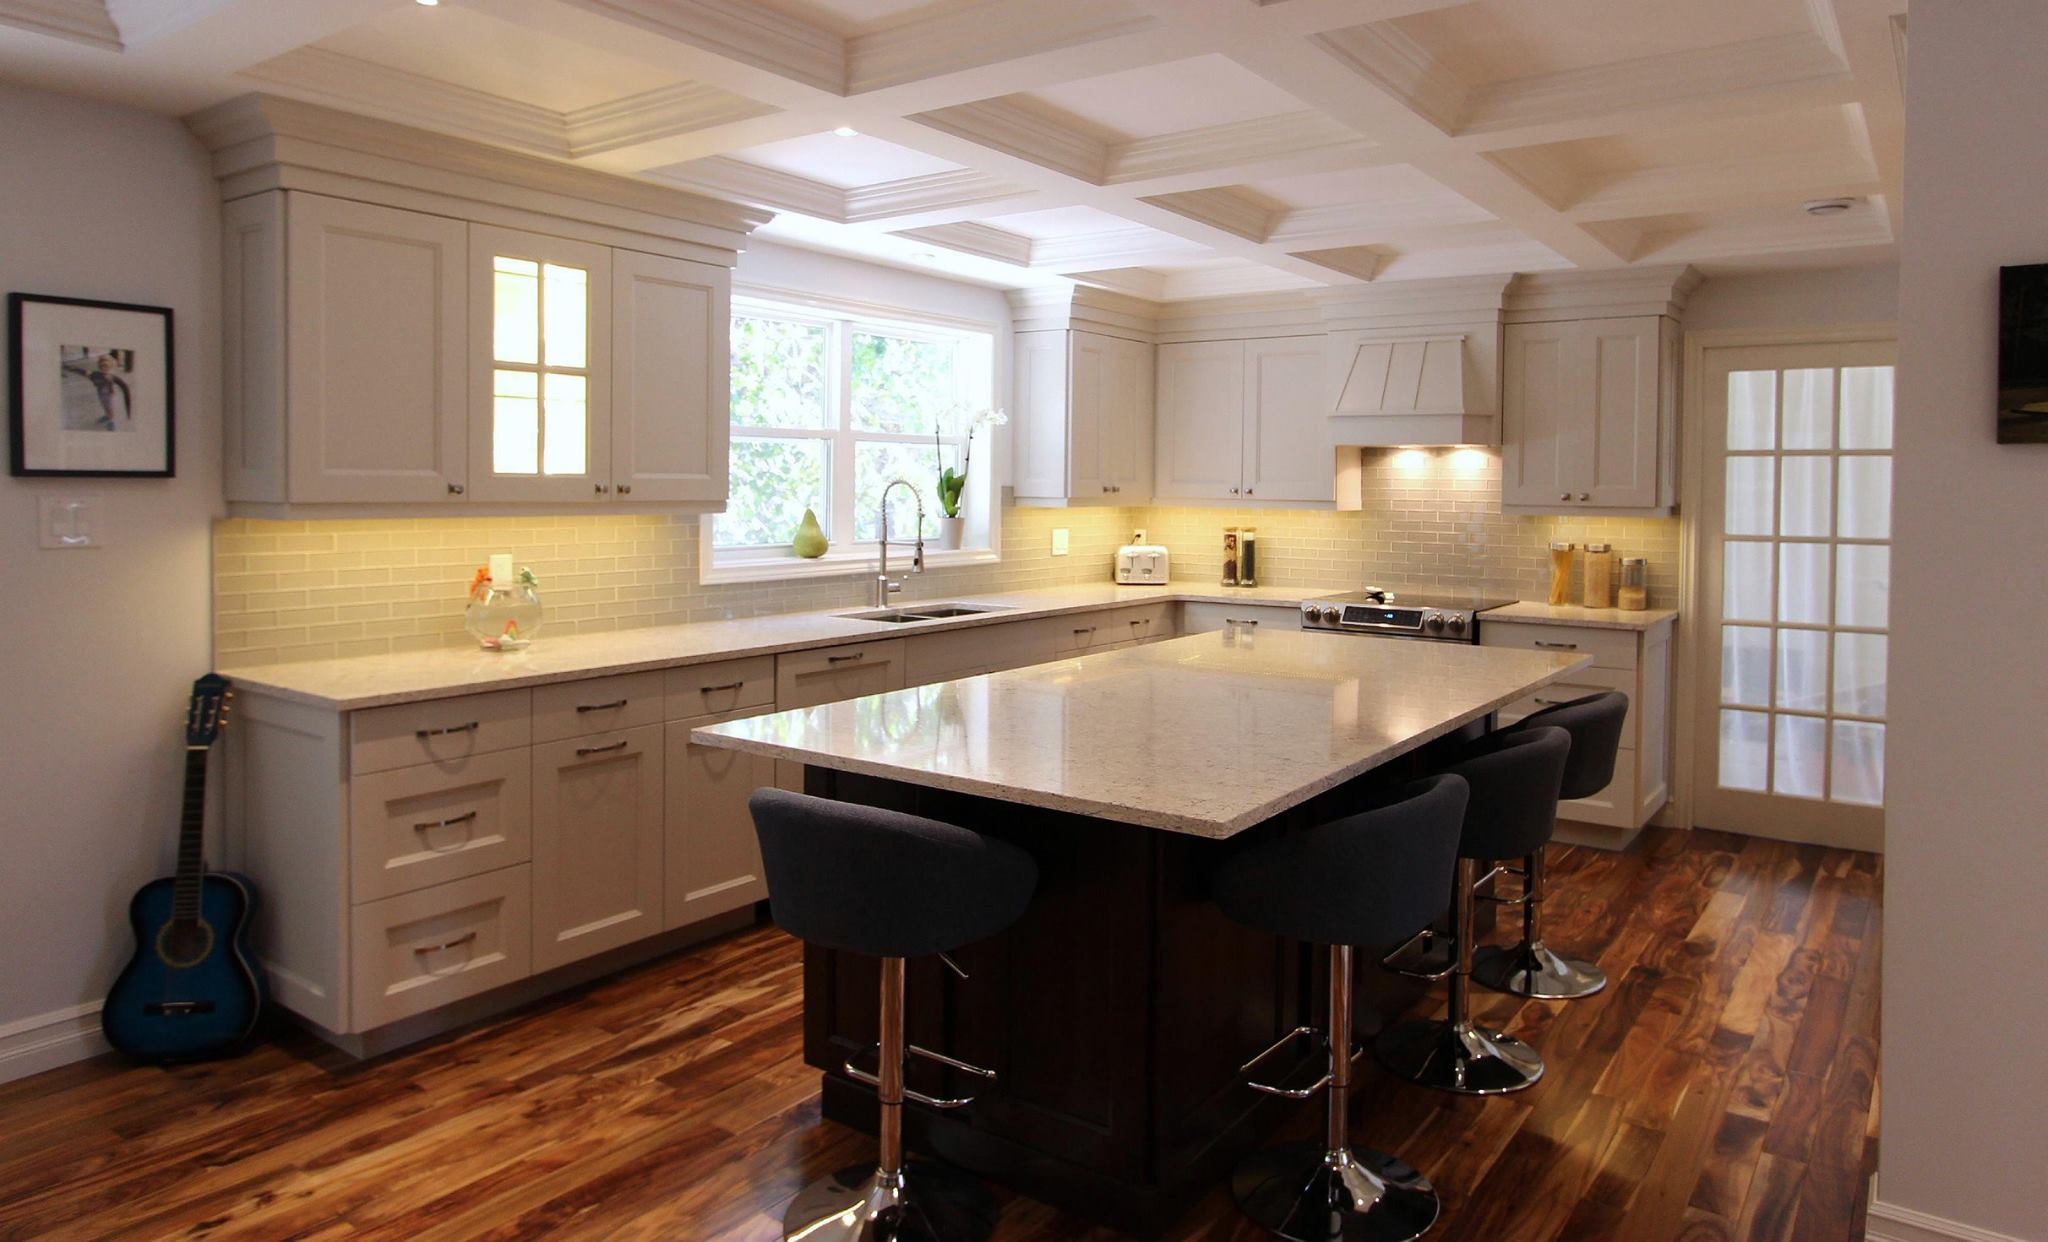 Kitchen Design Plus Of Halifax Awarded Best Of Houzz 2017 Kitchen Design Plus